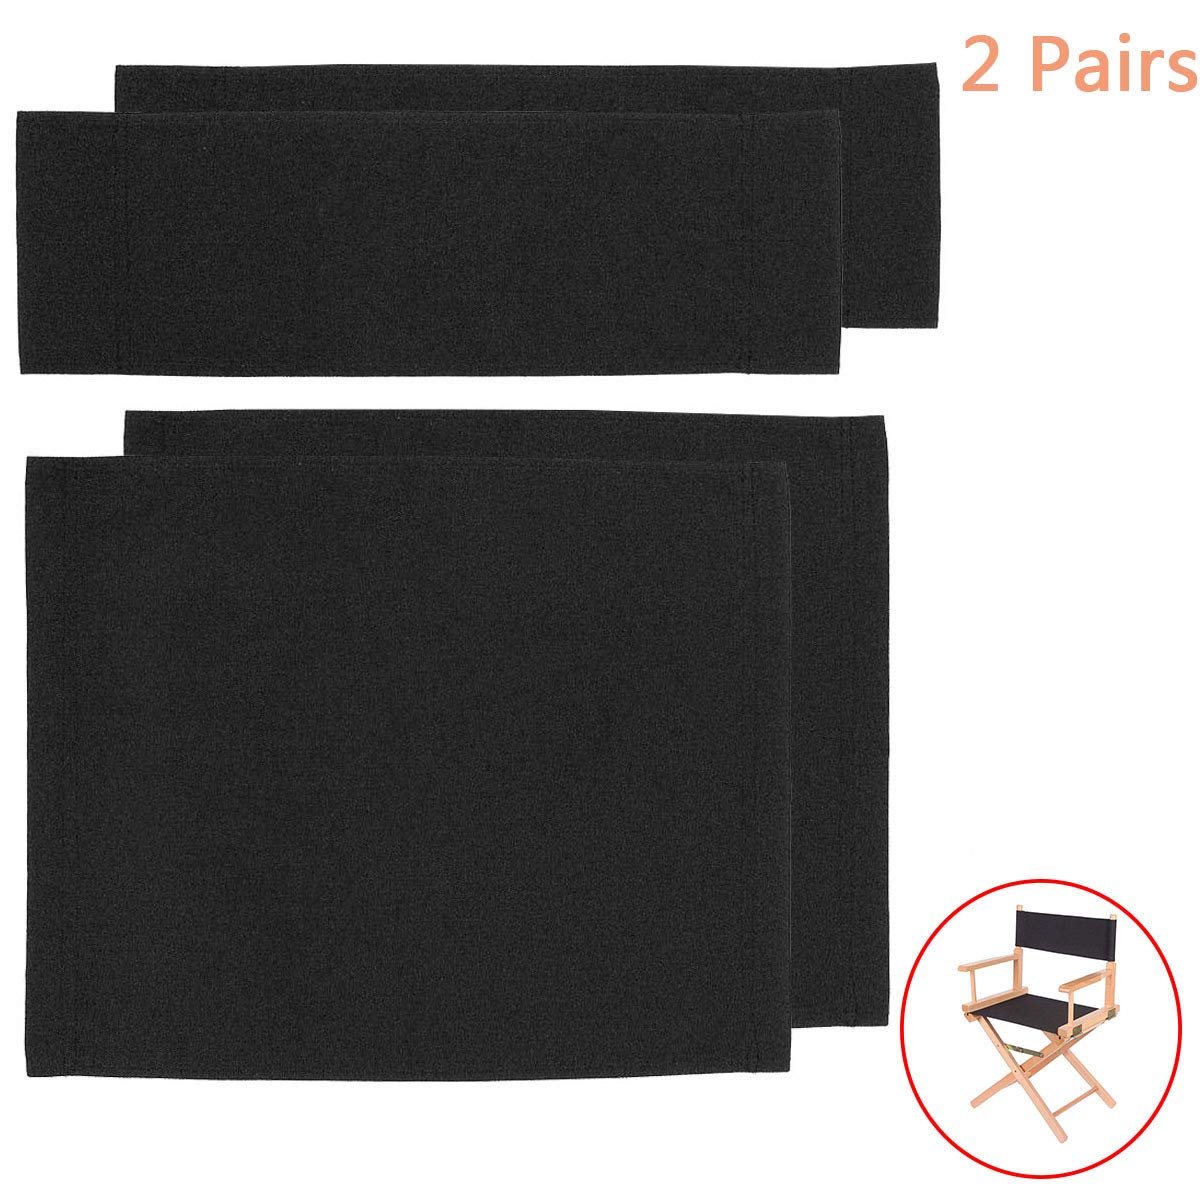 2 Set Replacement Cover Canvas for Directors Chair, Black by MYXC